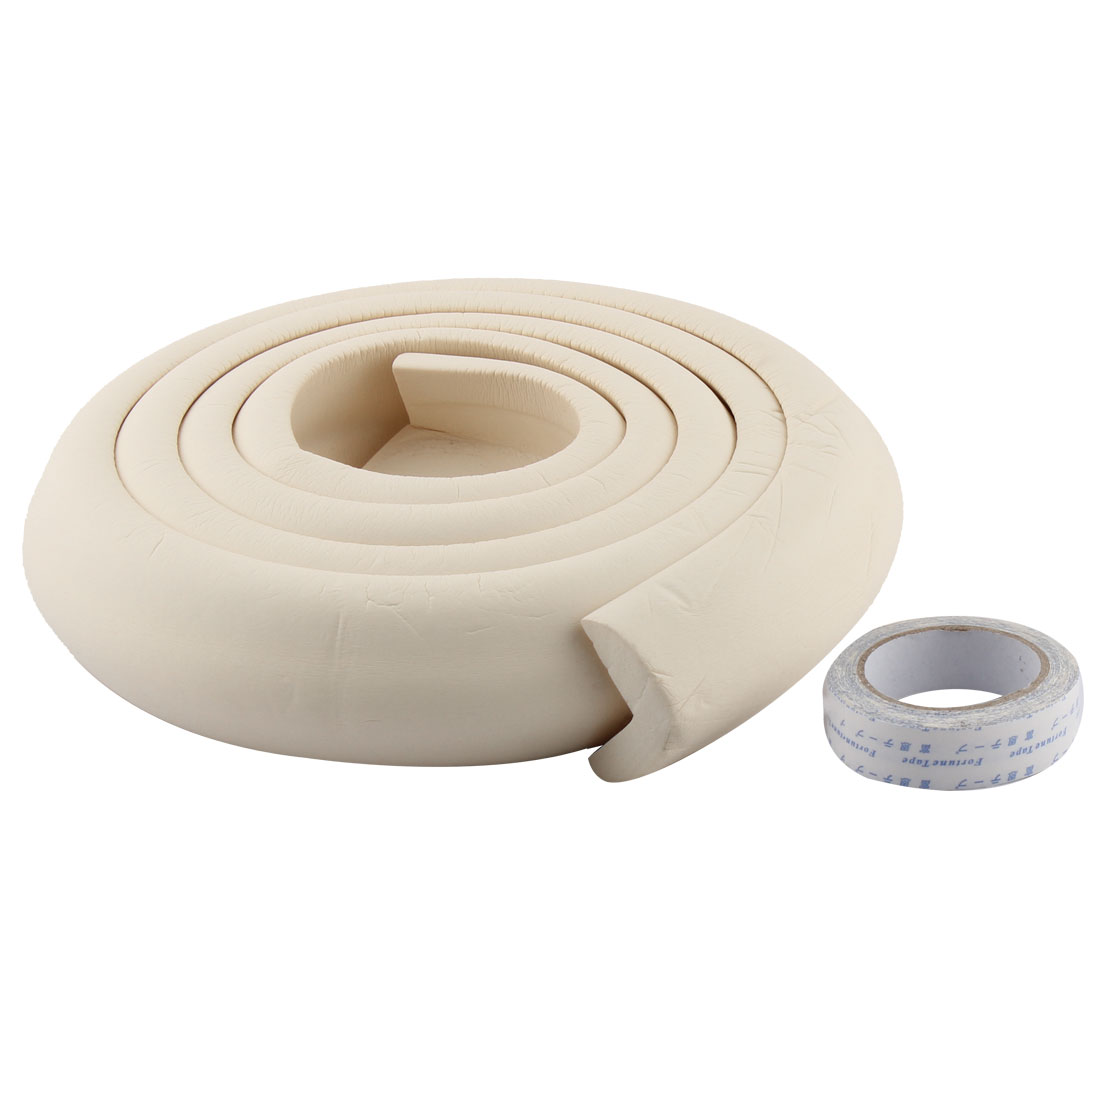 Furniture Corner Edge Soft Safety Protection Cushion Guard Beige w Adhesive Tape